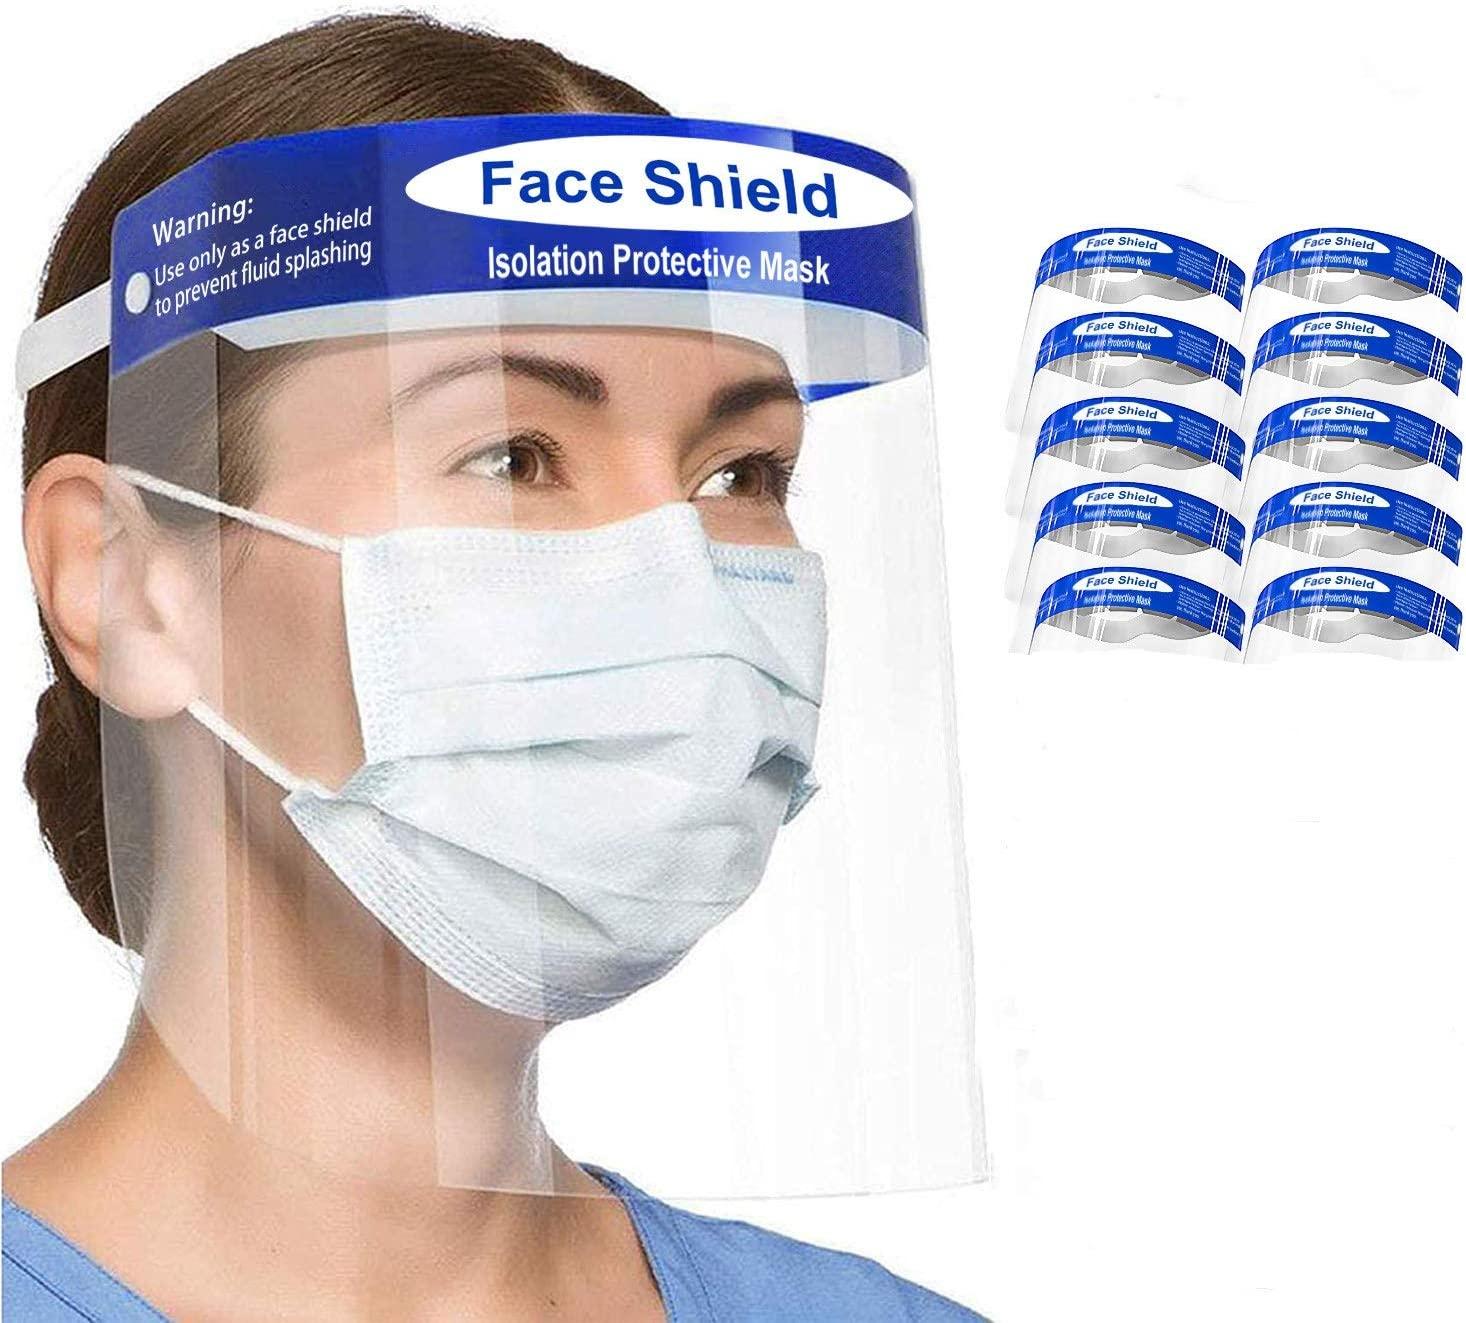 Nyche Designs 10pcs【US Stock 3-7 Days Delivery】 Face Transparent Shield,Lightweight Transparent Shield with Clear Wide Visor Spitting,Clear Wide Visor Spitting